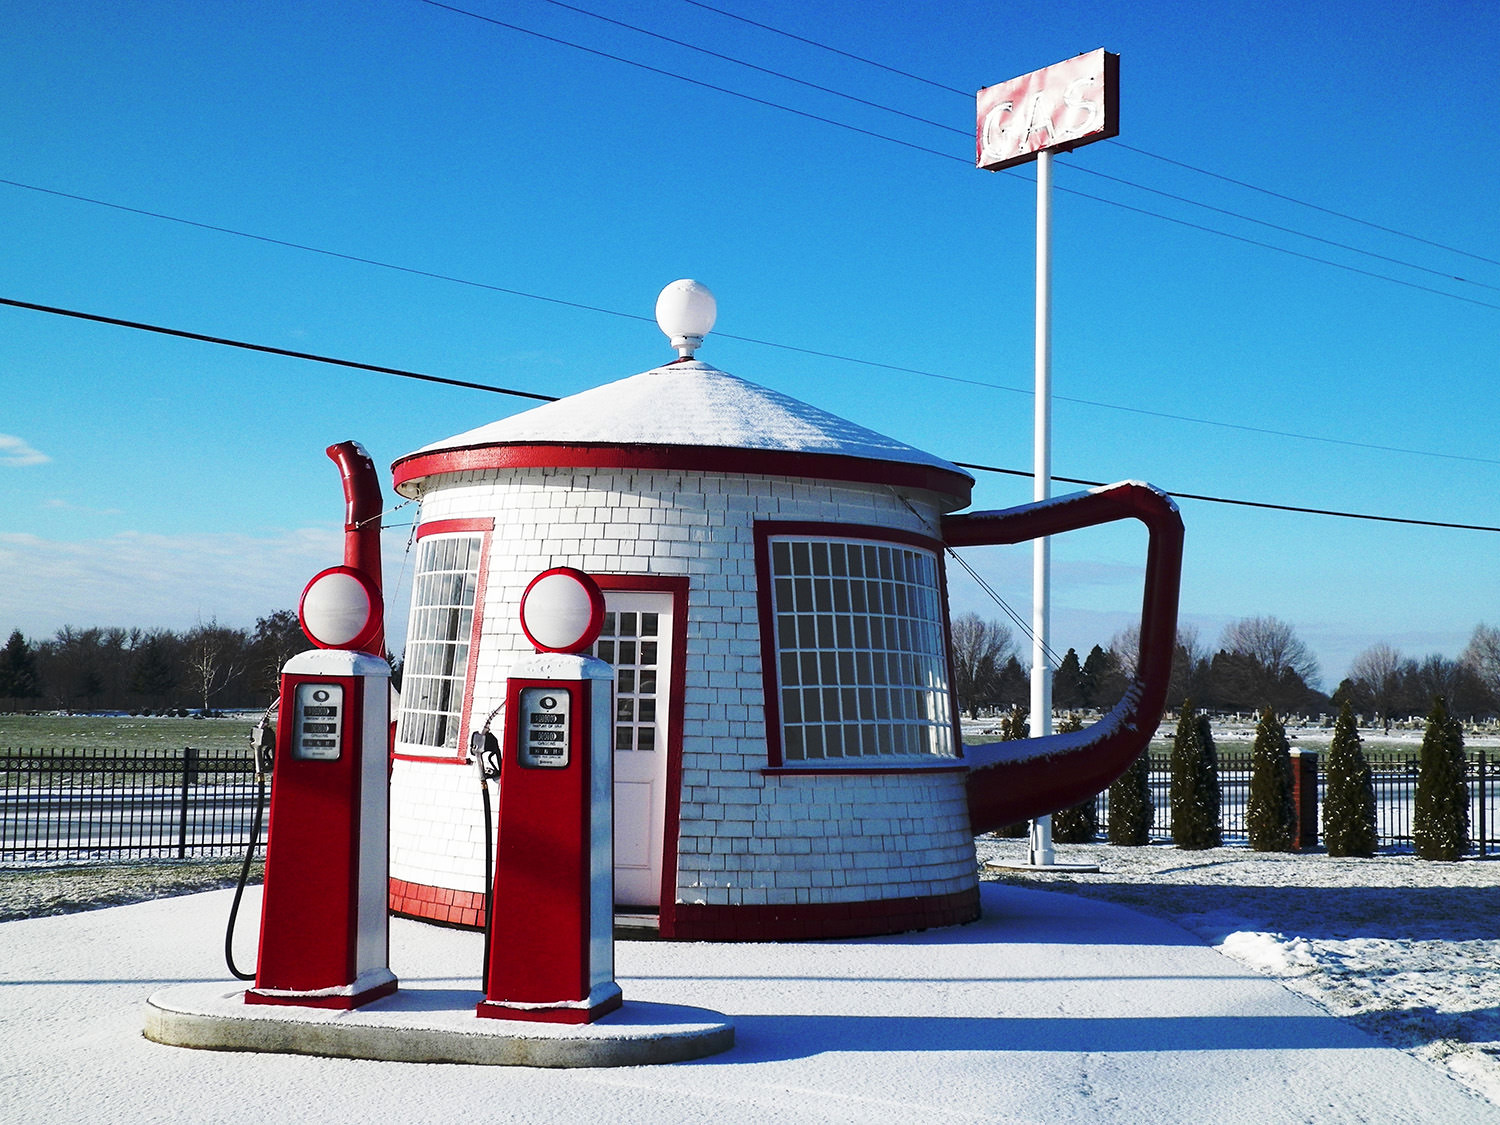 The Teapot Dome Service Station in Washington state is an example of novelty architecture and of a roadside attraction